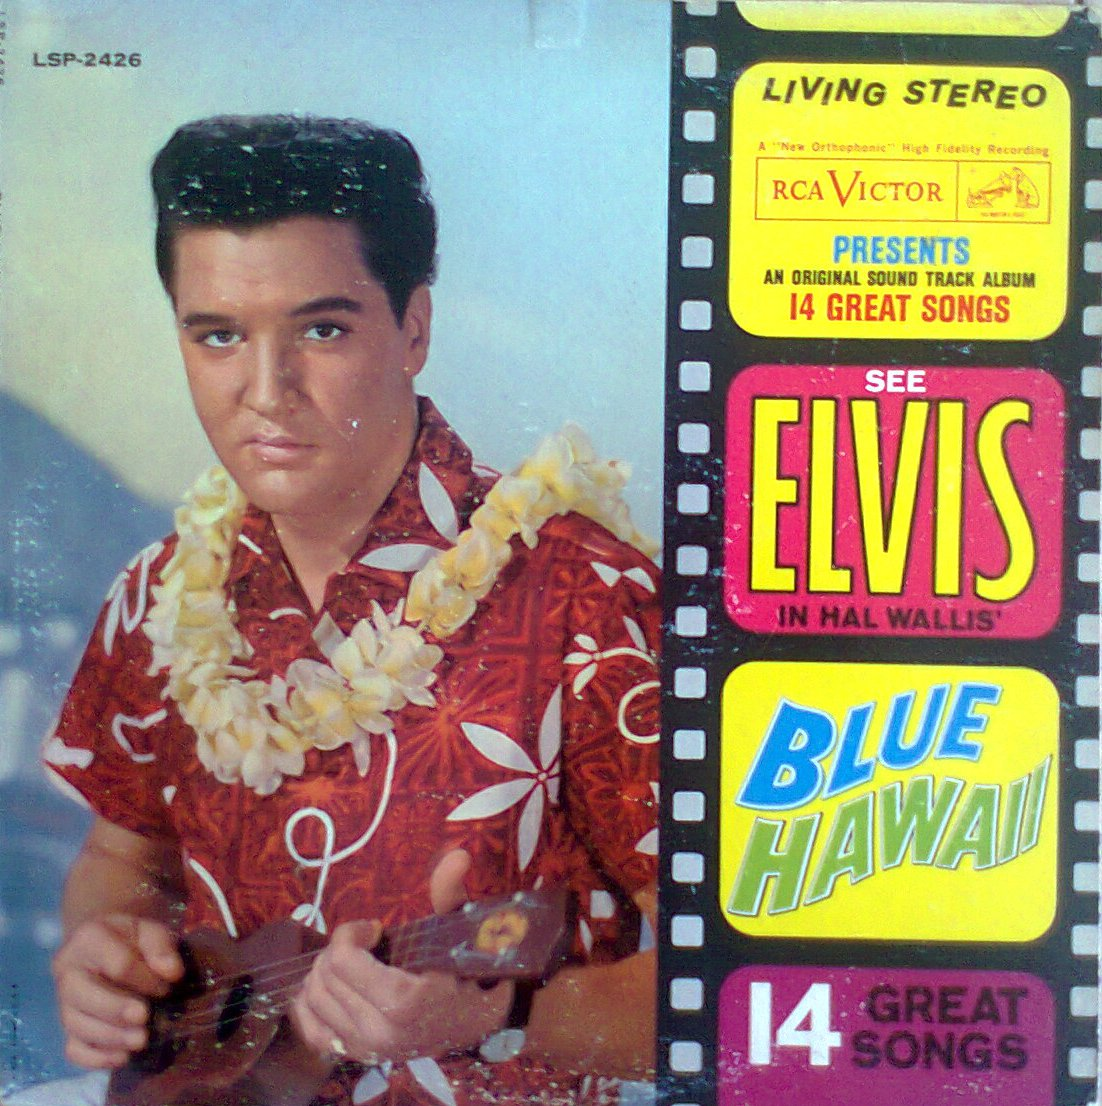 BLUE HAWAII Foto0251tbk18